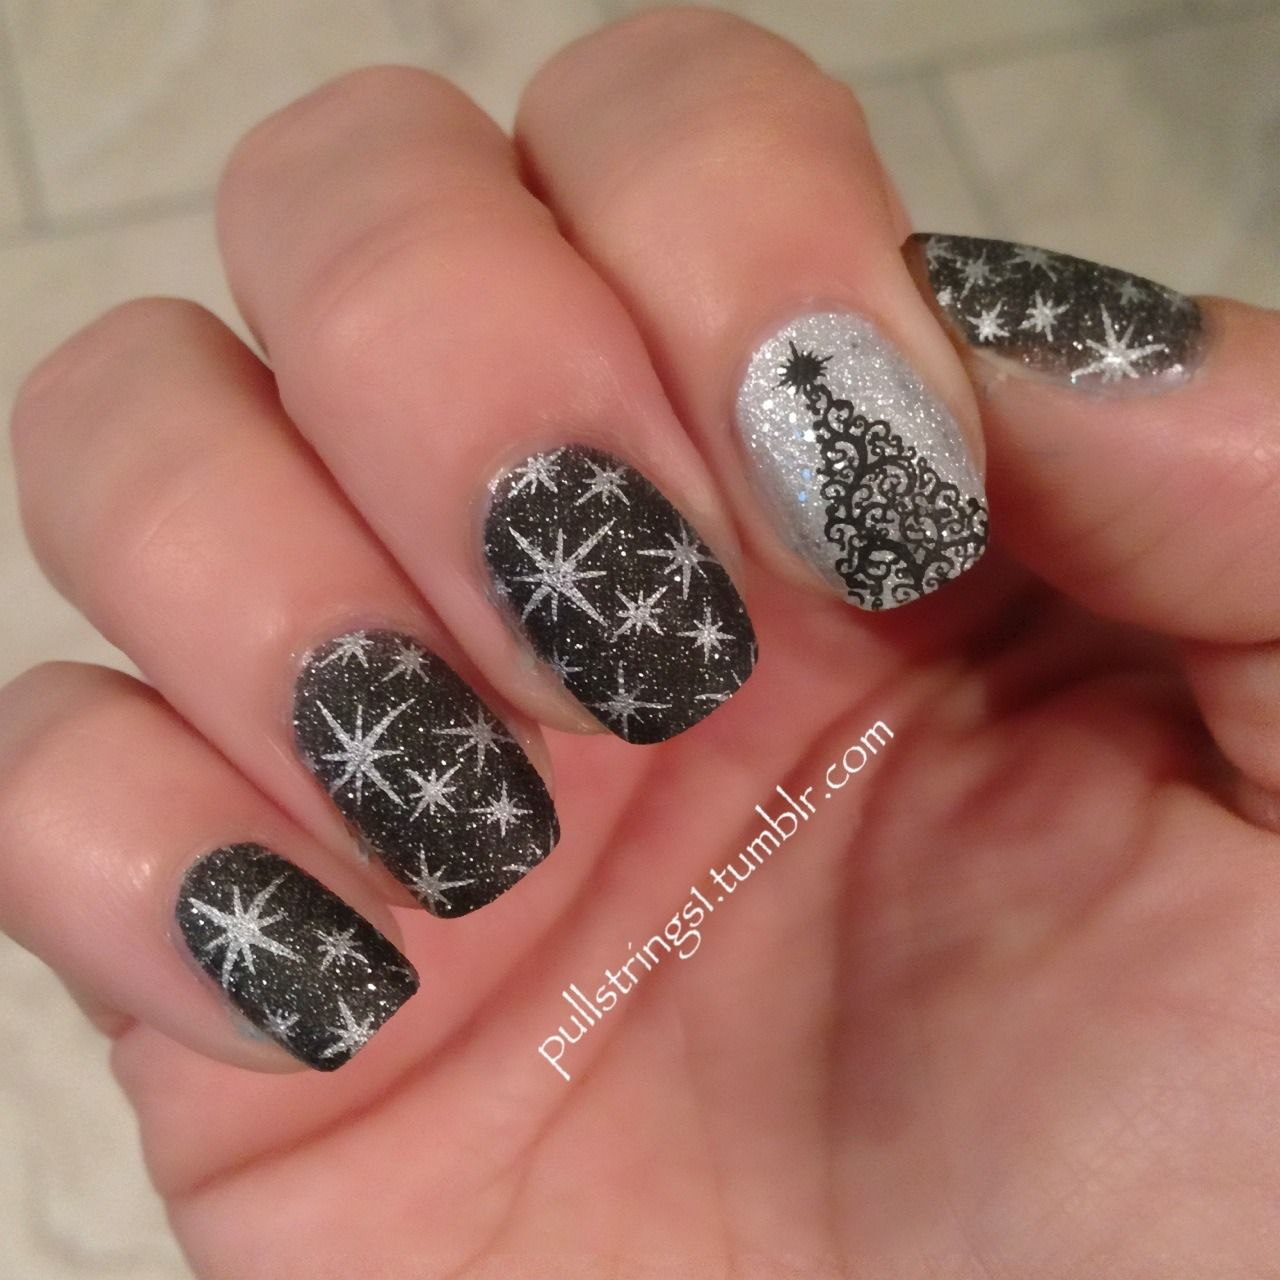 New Year | New Year Nails | Pinterest | Winter nails, Winter nail ...